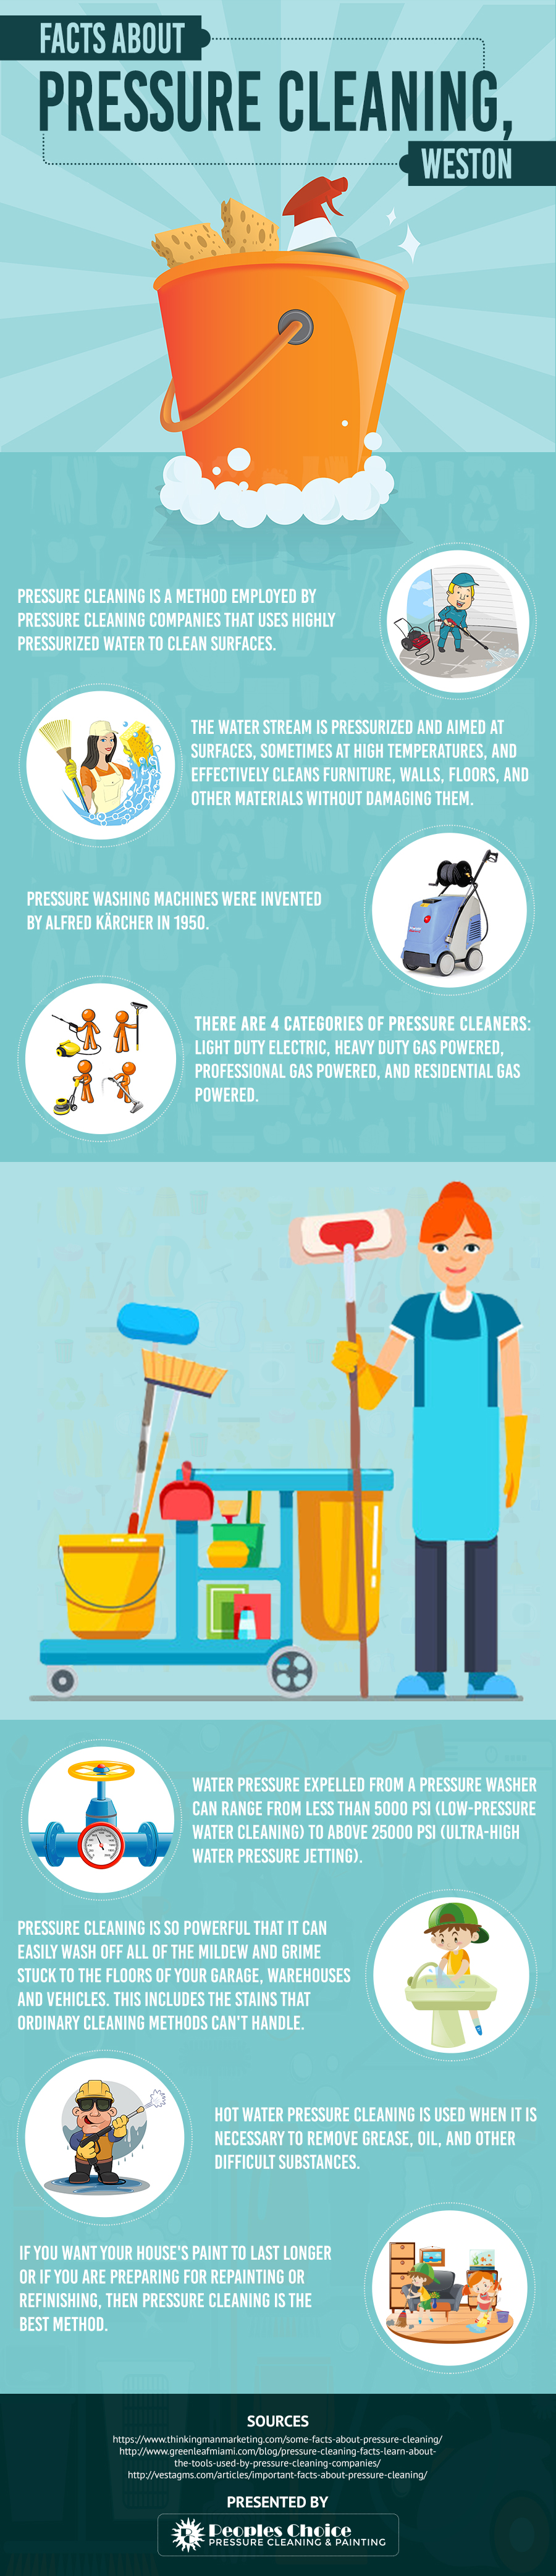 Infographic : Essential Facts About Pressure Cleaning - Pressure Cleaning & Painting Service Davie FL, Fort Lauderdale, Hollywood Florida